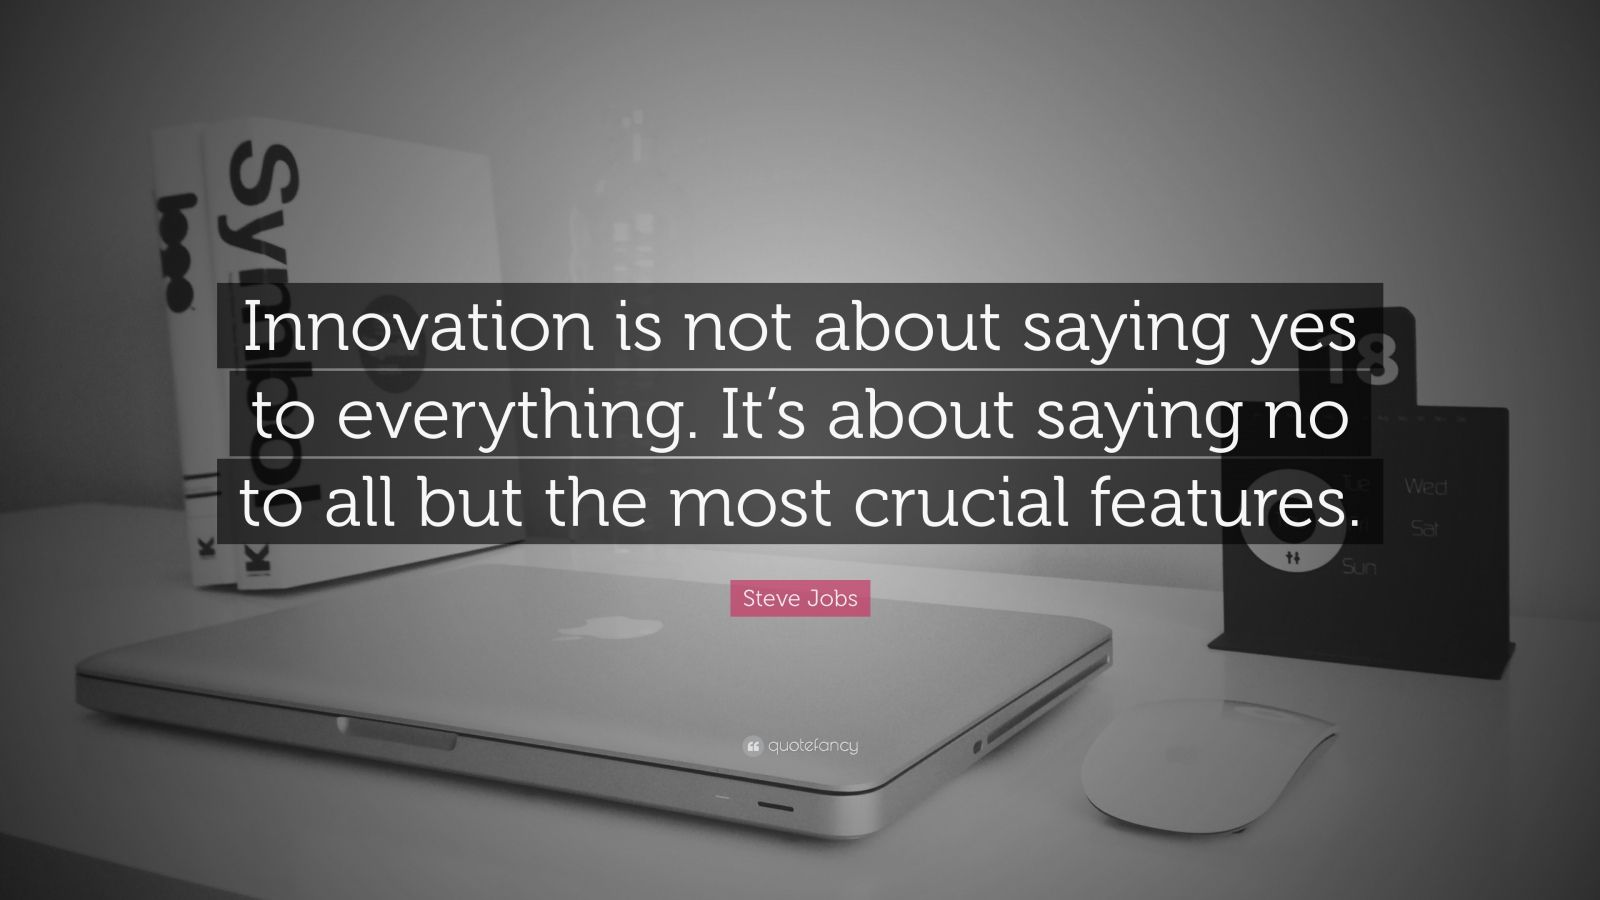 Steve Jobs Saying Yes to Everything Is Not About Innovation